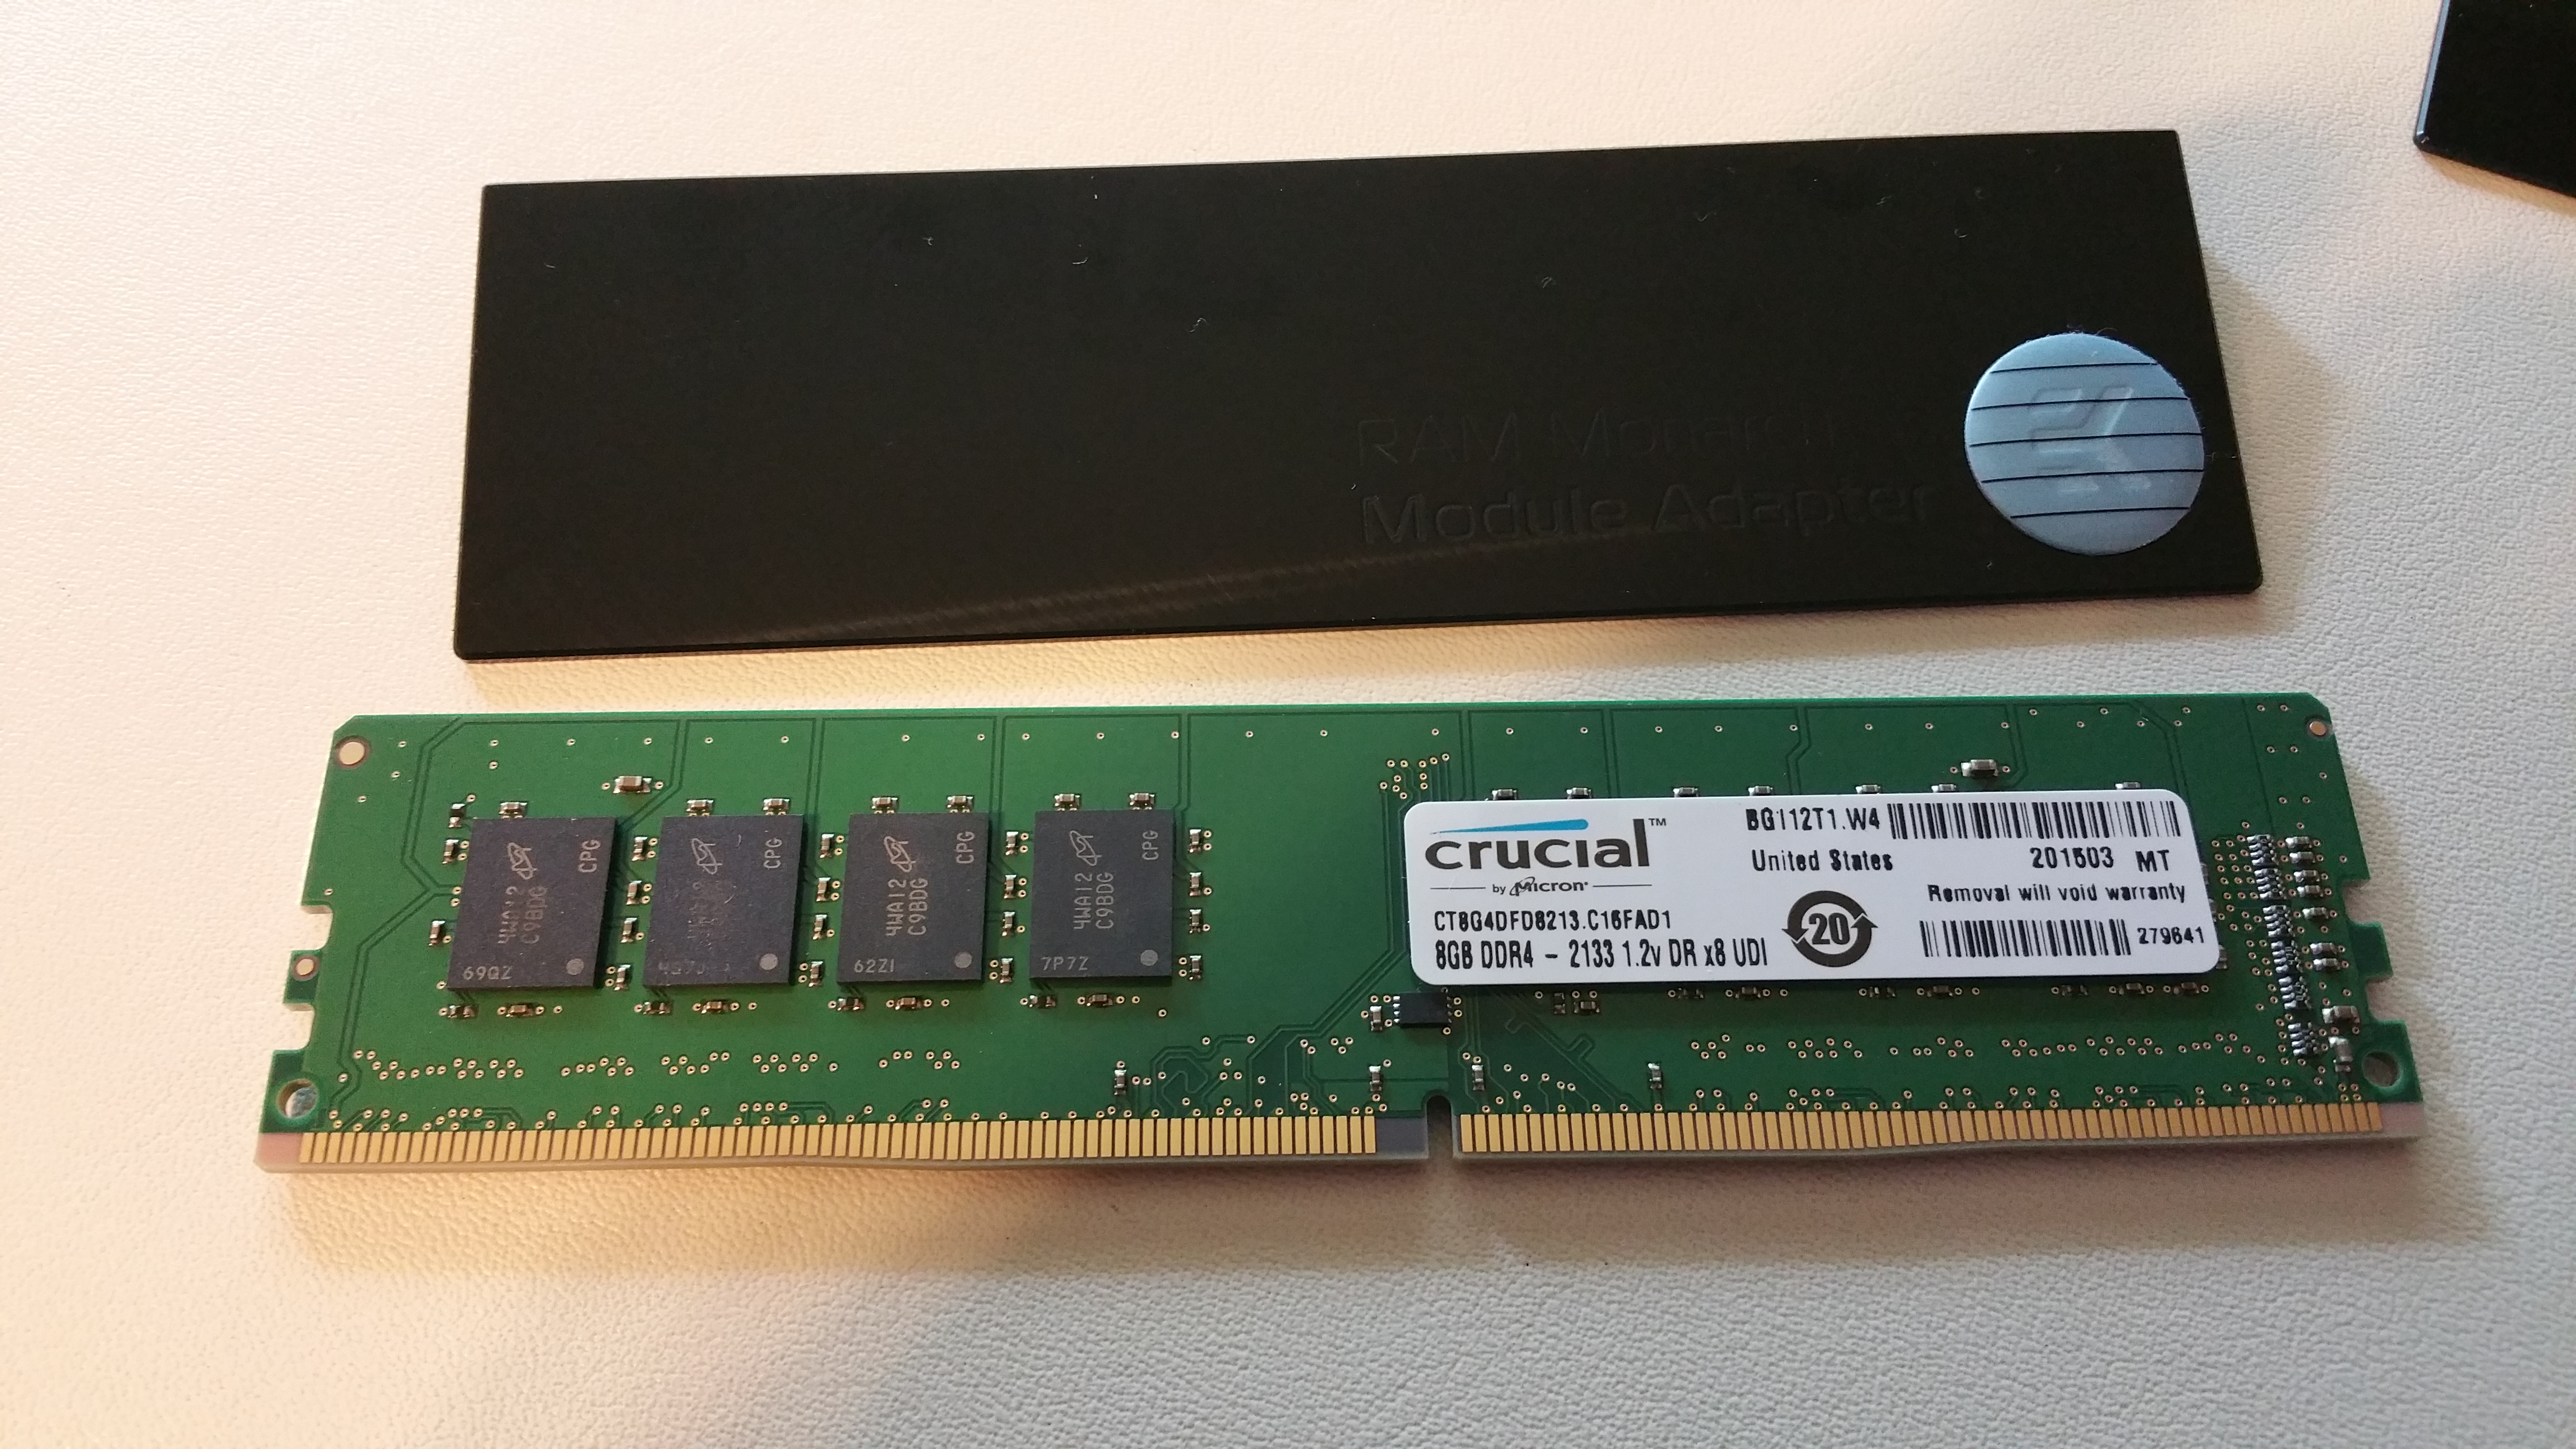 Basic DDR4 RAM - this 1866 Crucial stuff can do 2400, no need for more atm.